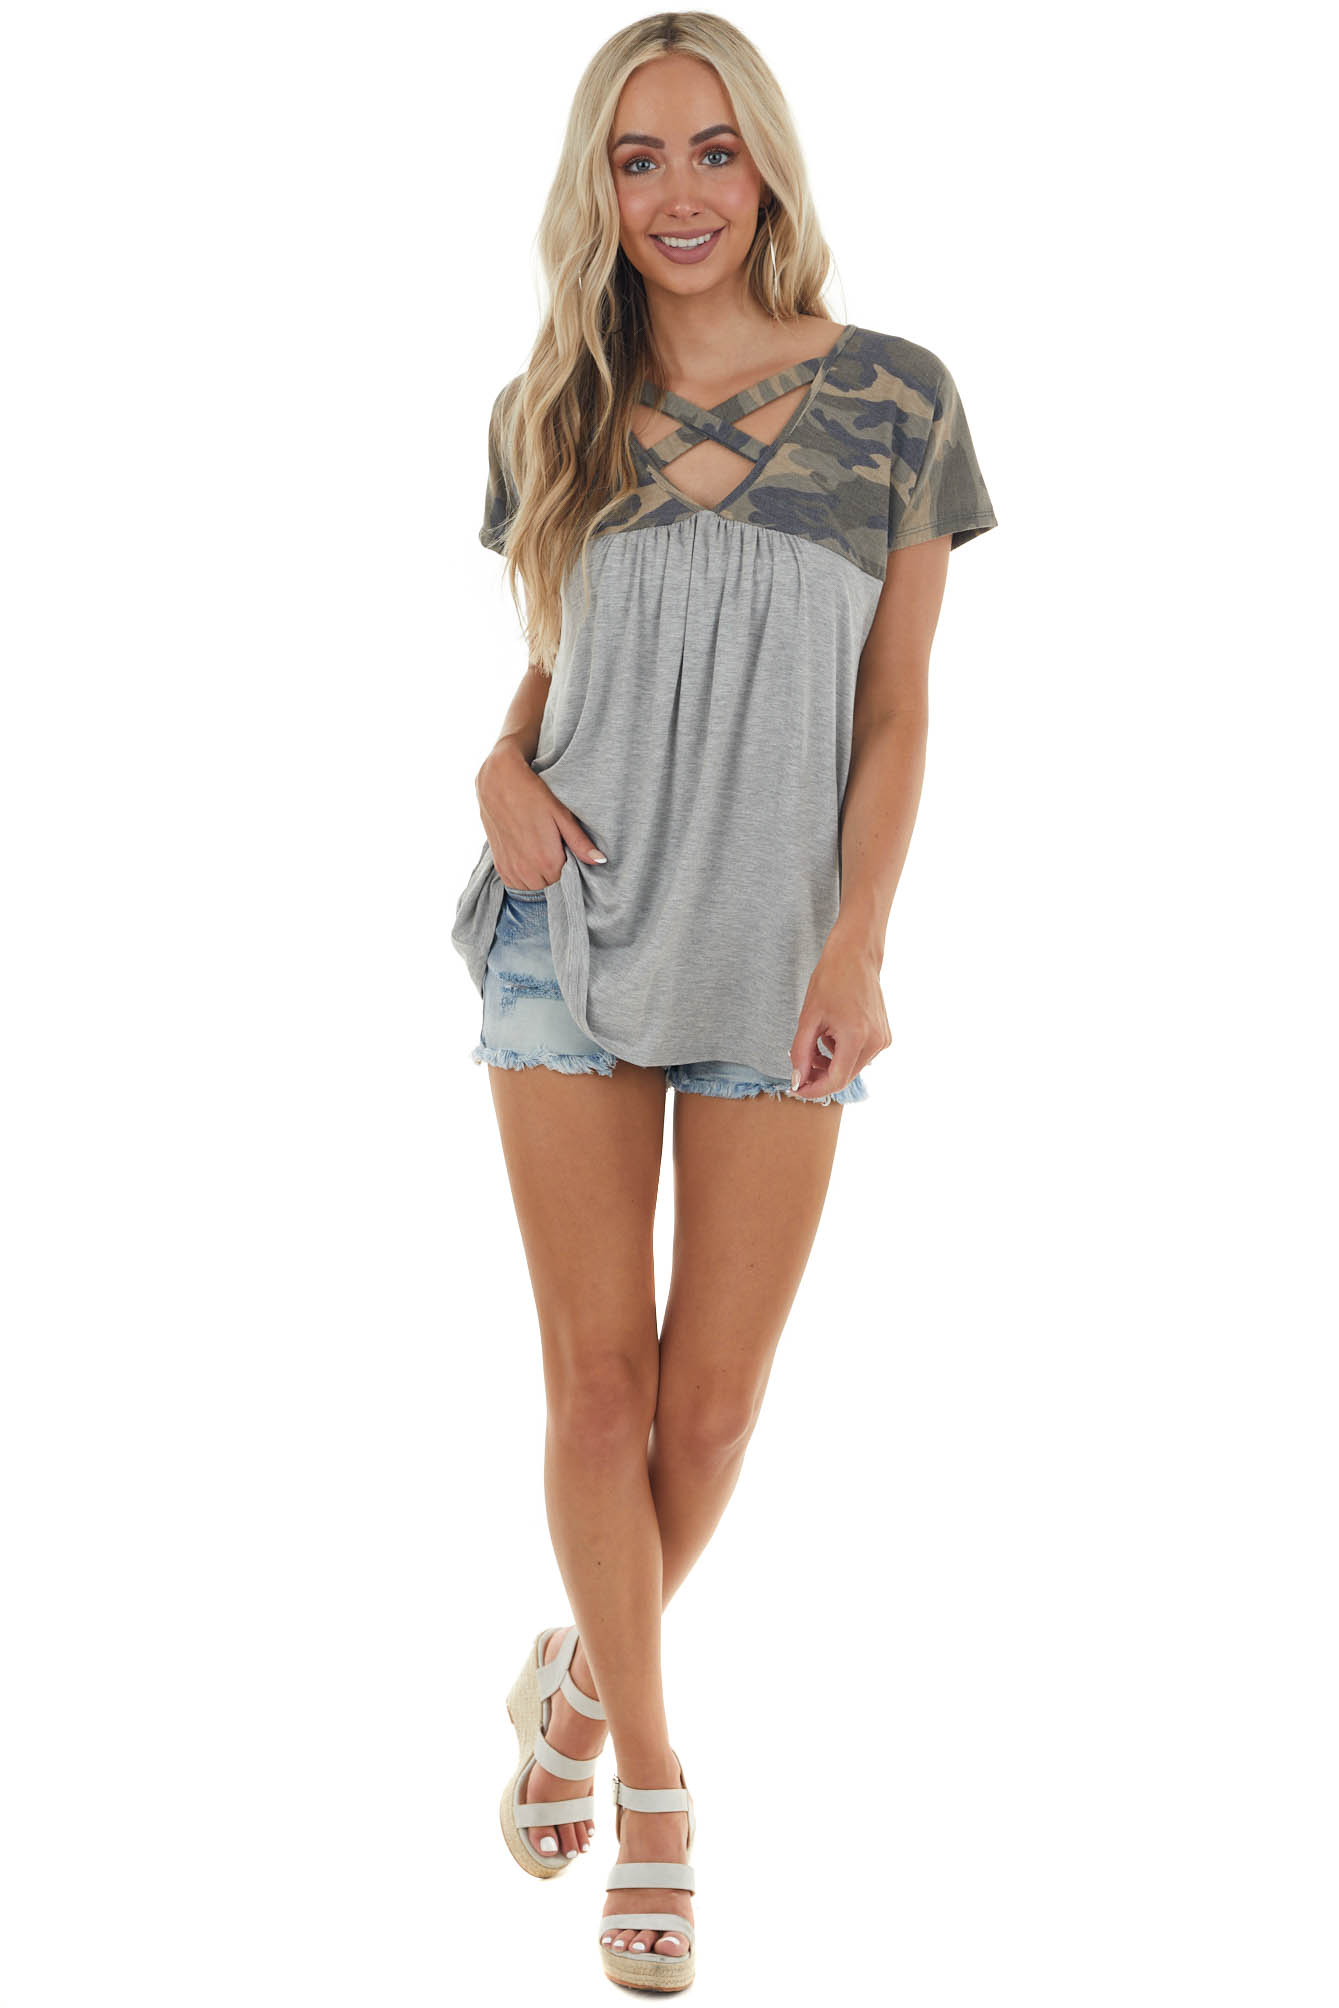 Olive Camo and Heather Grey Short Sleeve Top